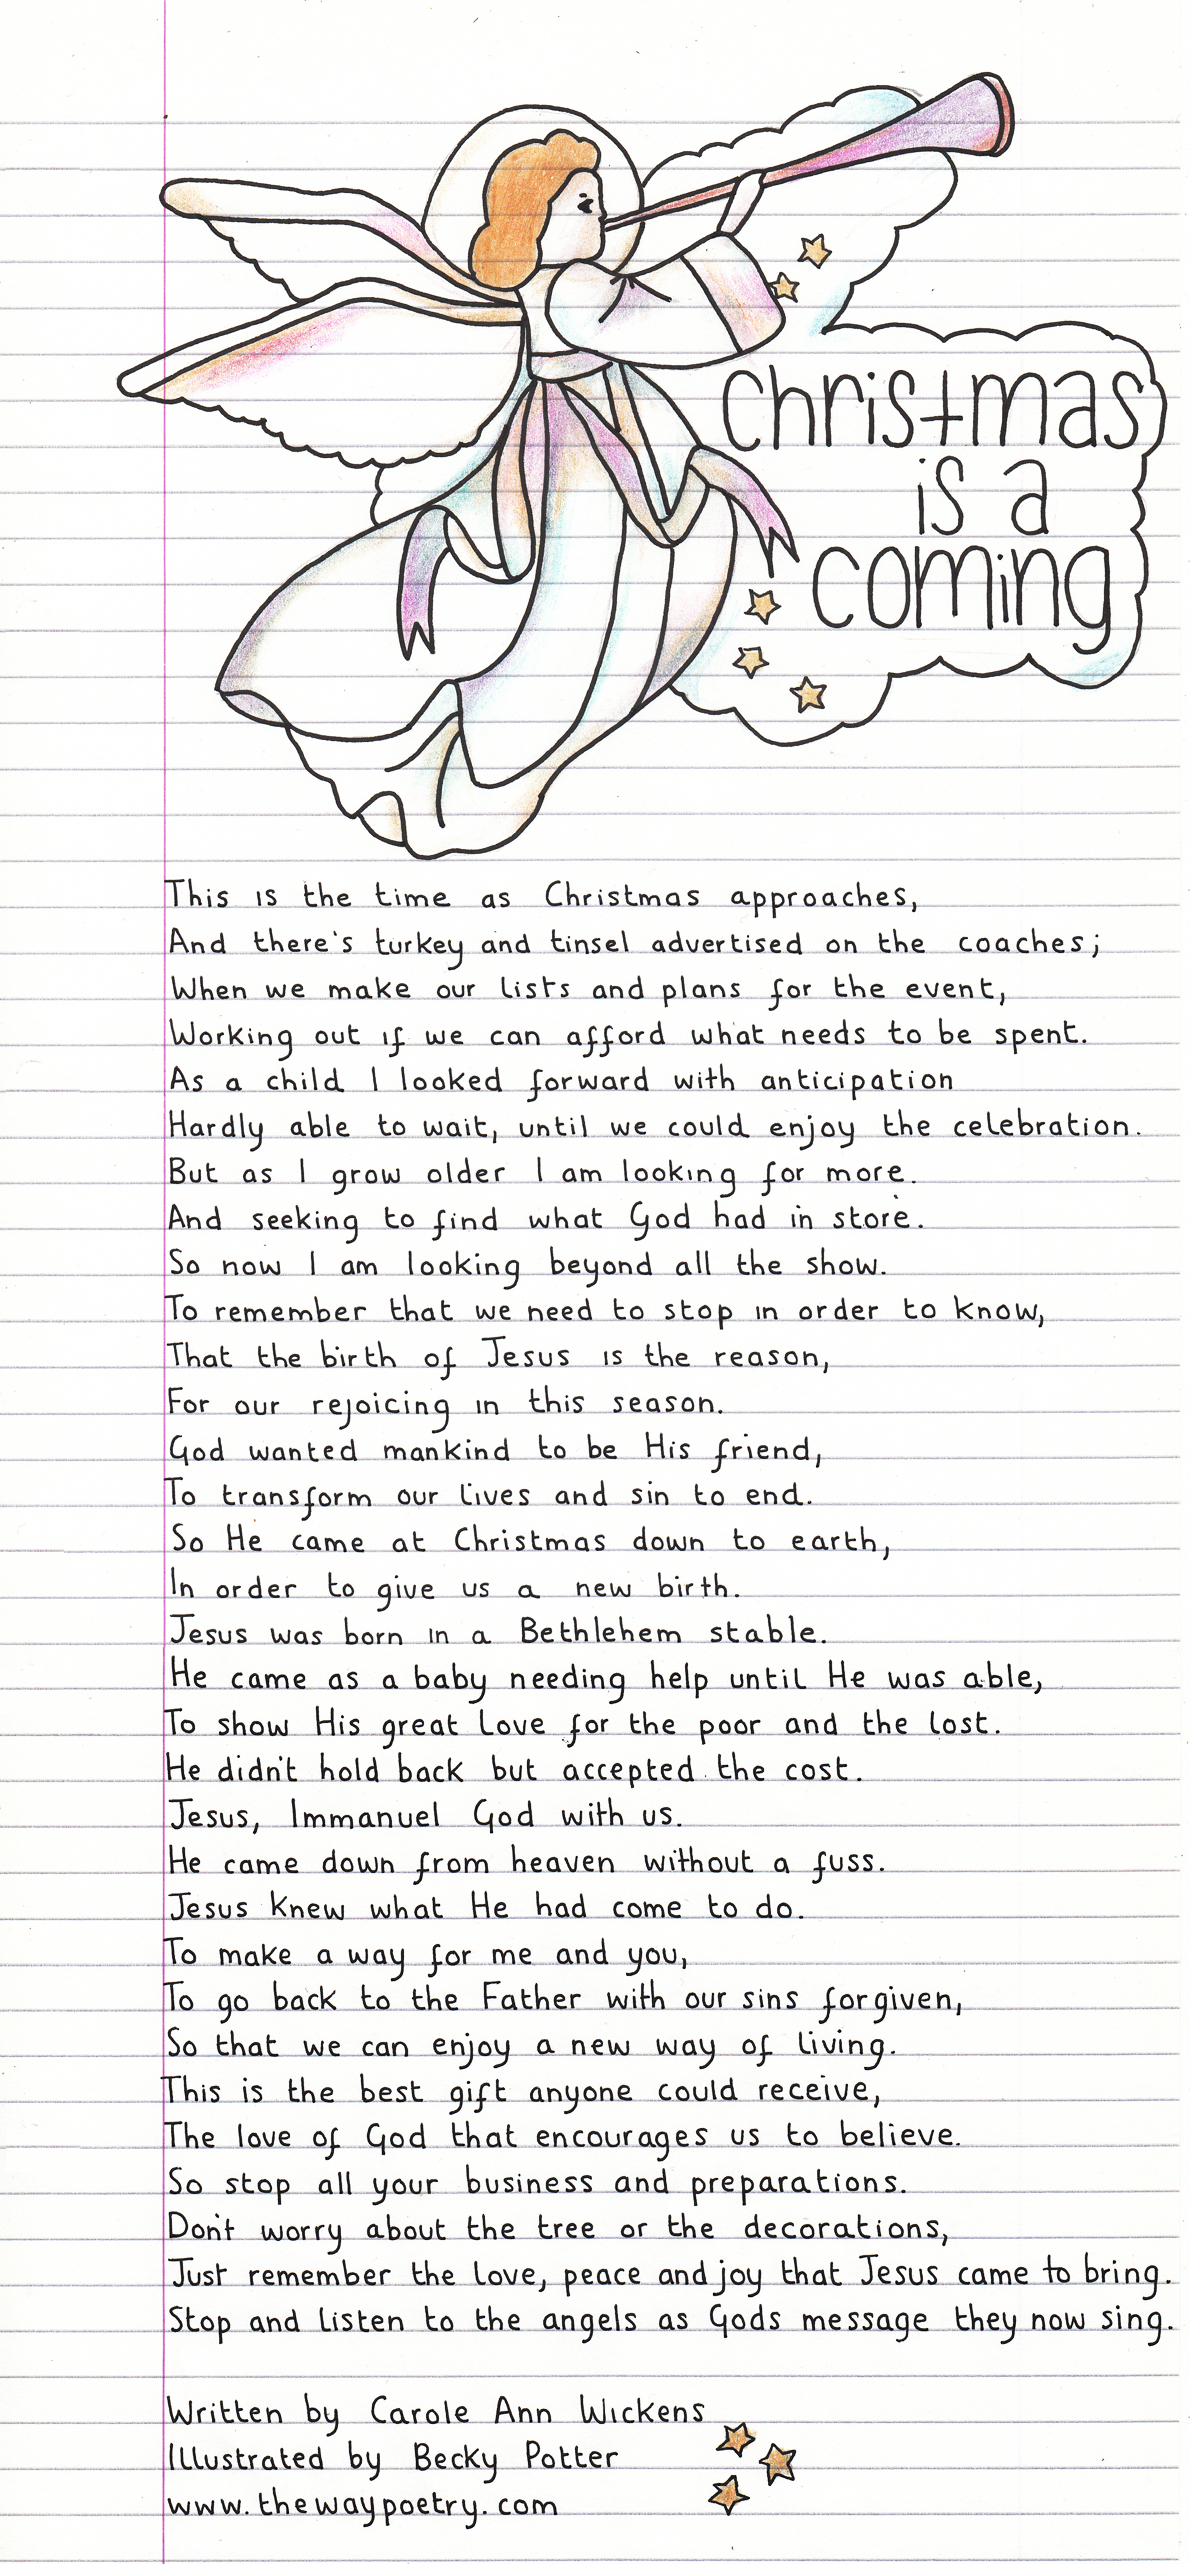 Christmas Is A Coming by Carole Ann Wickens